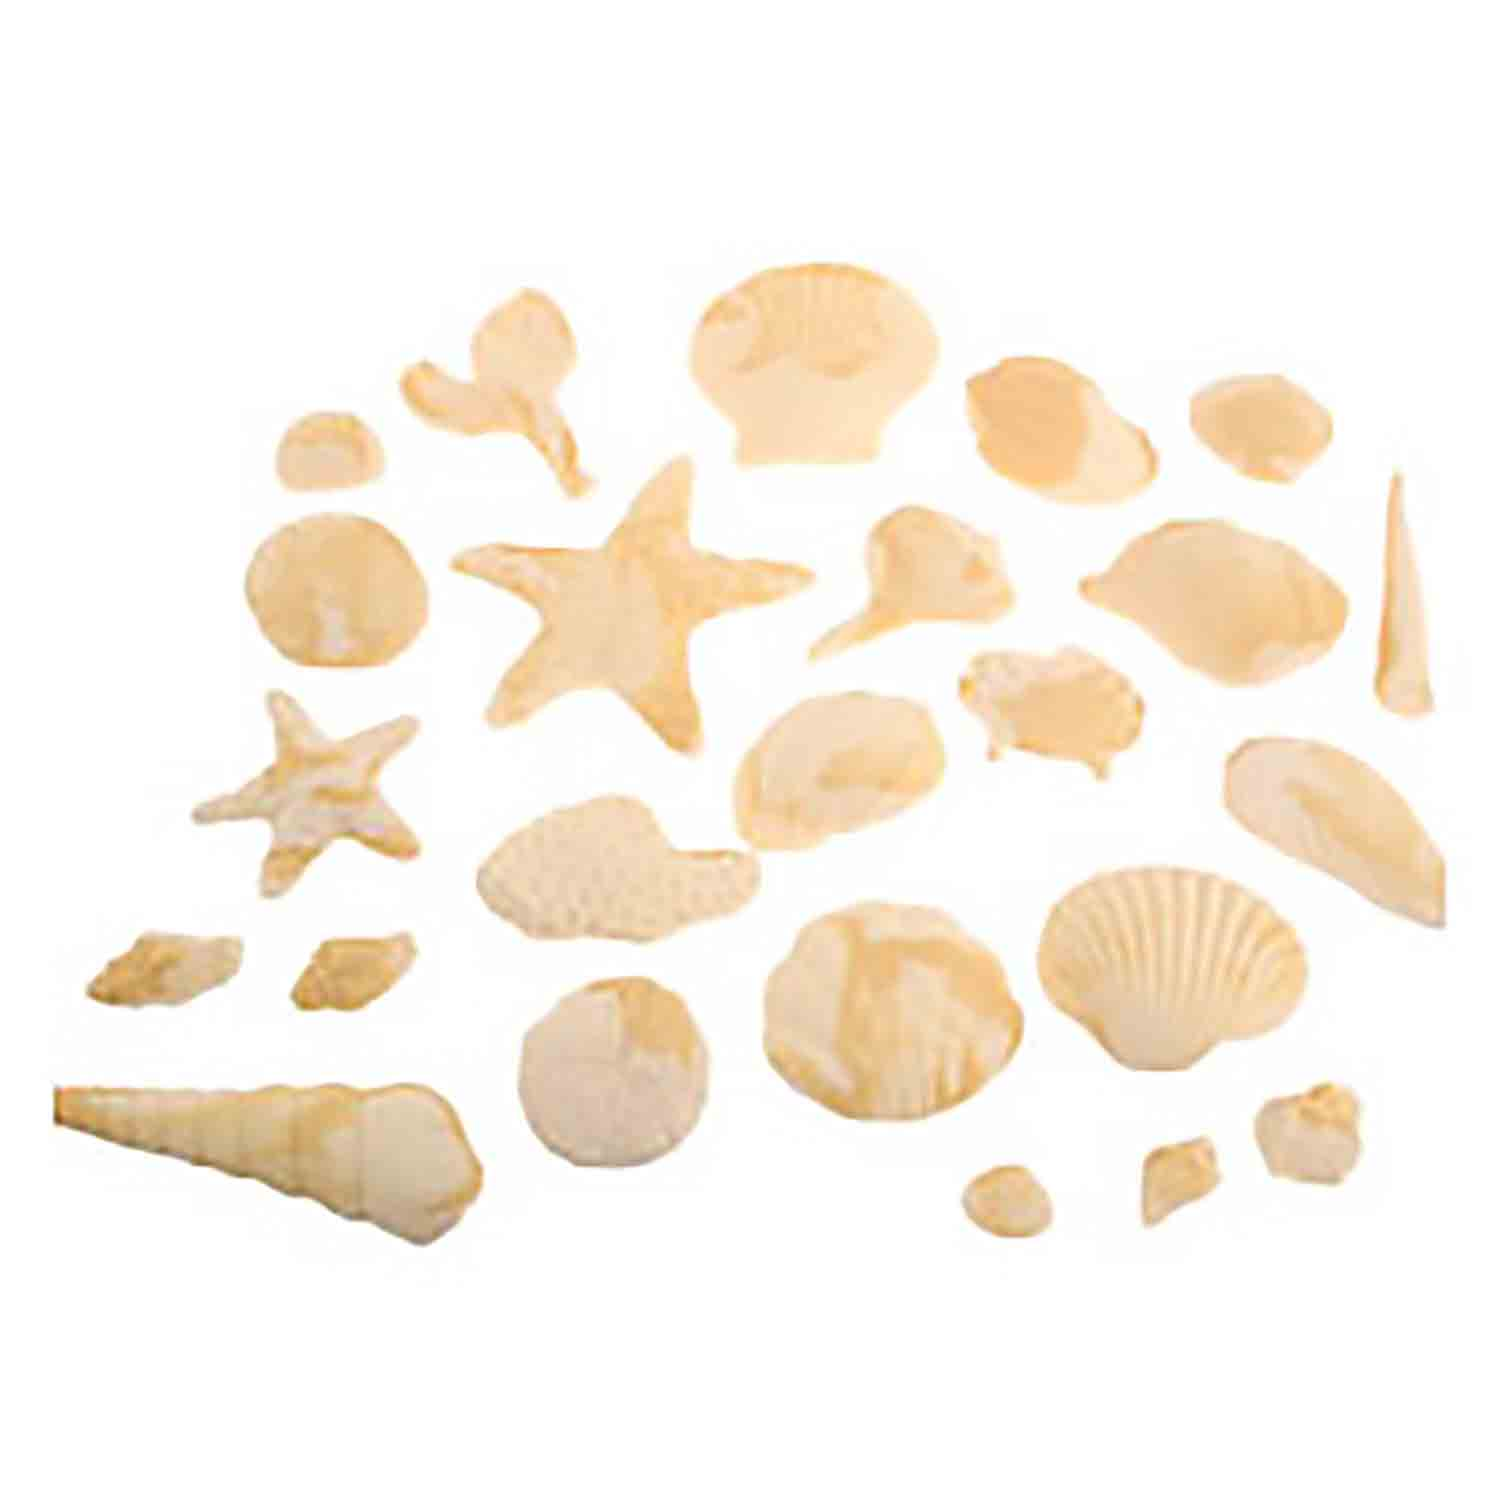 Marbled Fondant Sea Shell Assortment